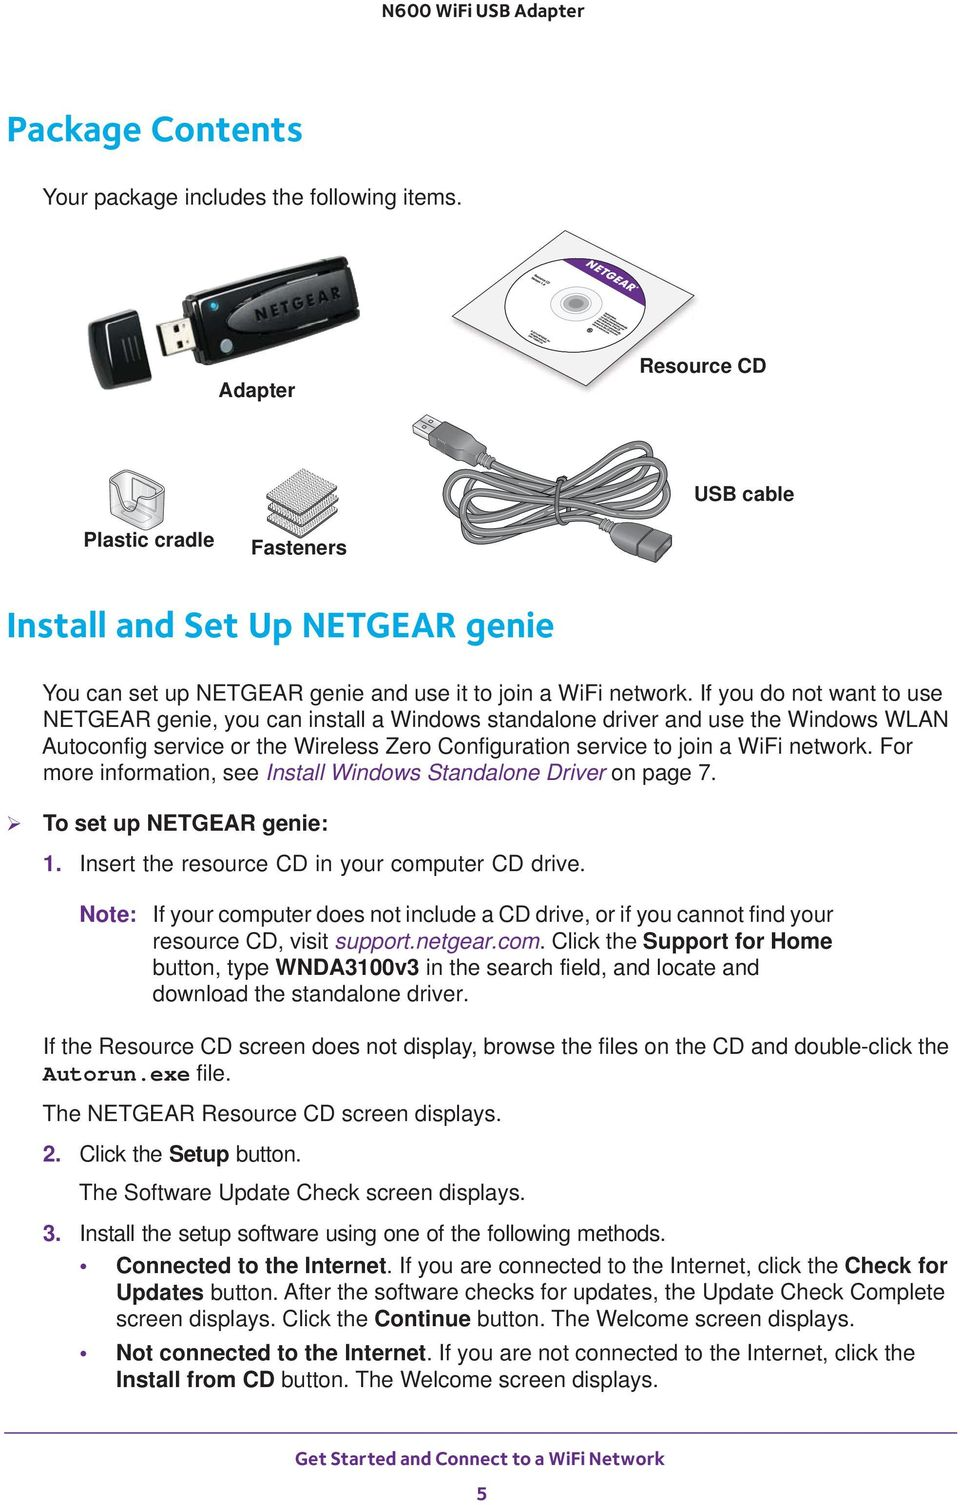 If you do not want to use NETGEAR genie, you can install a Windows standalone driver and use the Windows WLAN Autoconfig service or the Wireless Zero Configuration service to join a WiFi network.